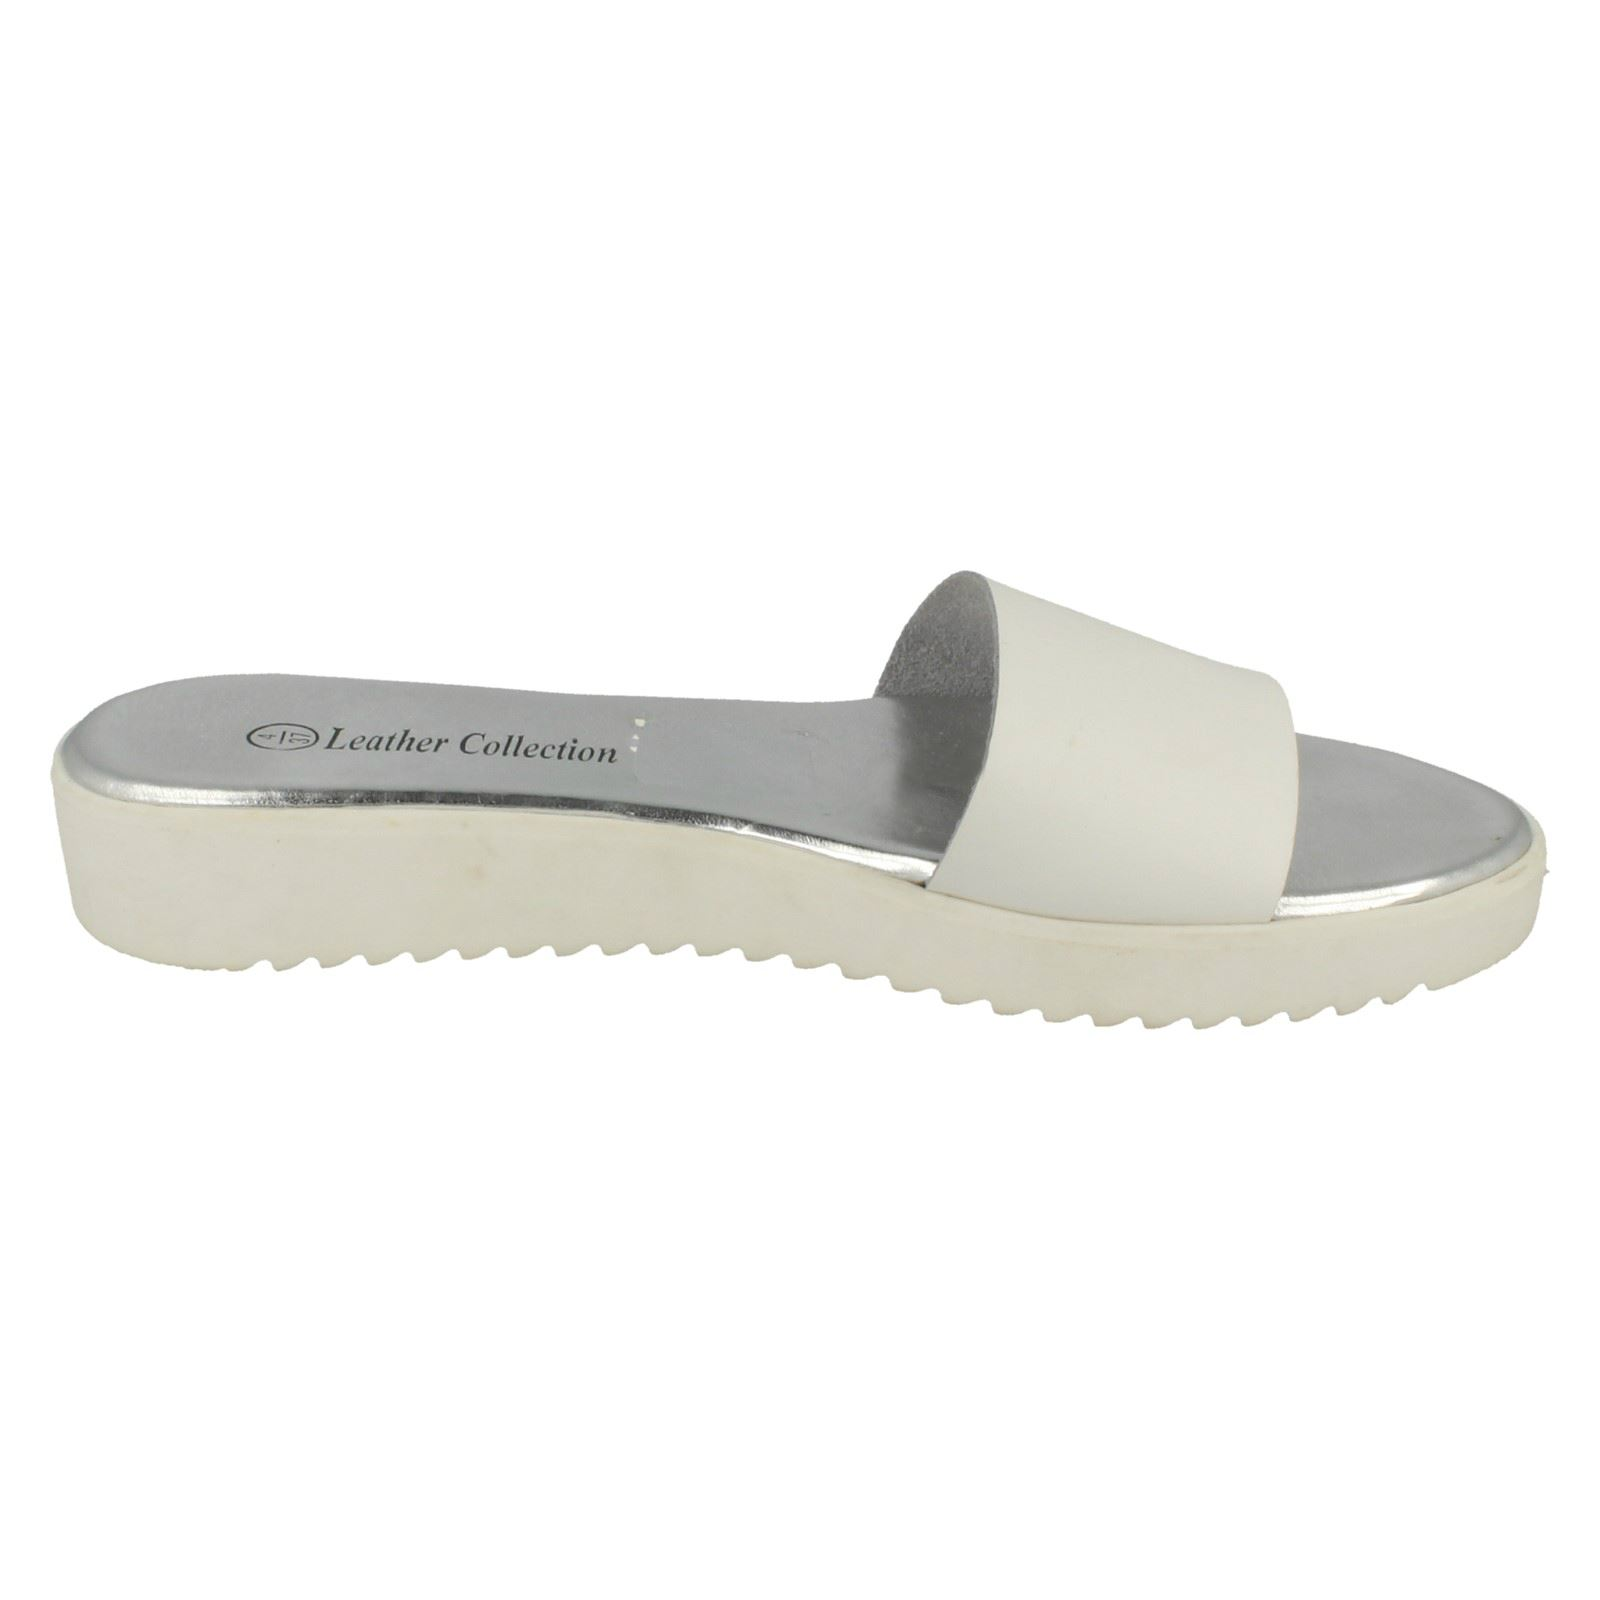 Ladies Leather Collection Casual *Slip On Mules*